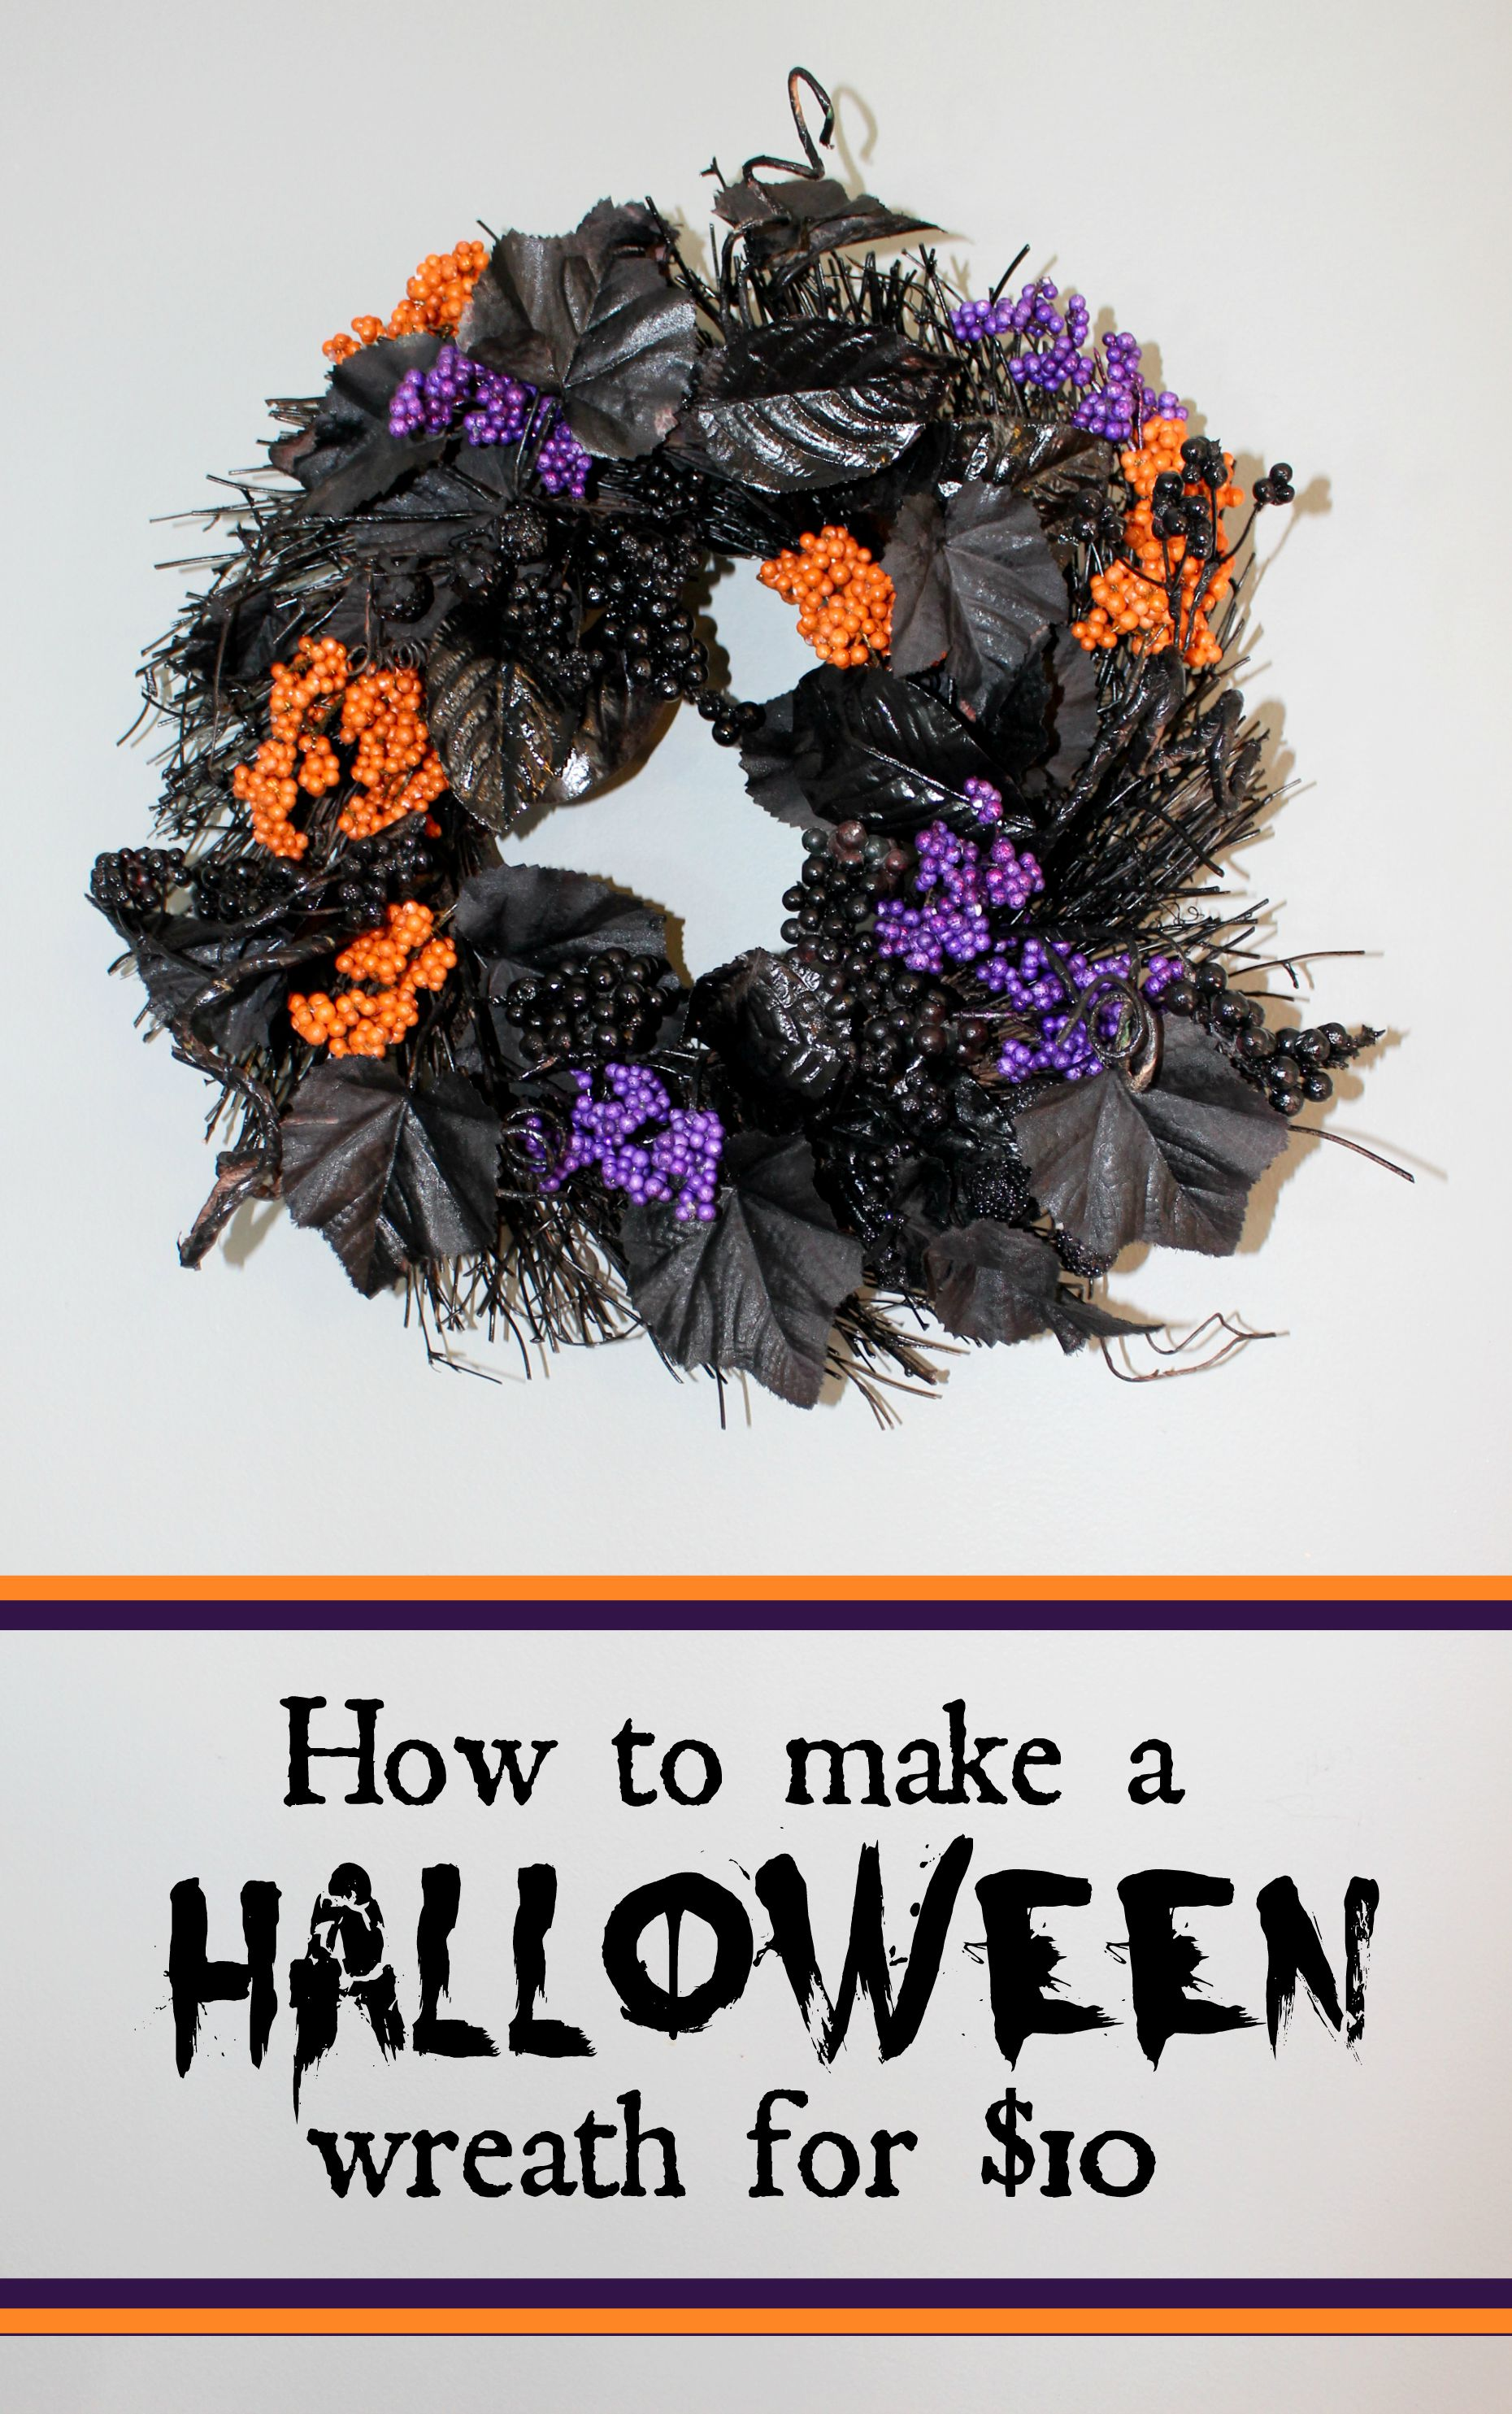 How to make a purple and orange halloween wreath for under $10 as seen on JennsRAQ.com